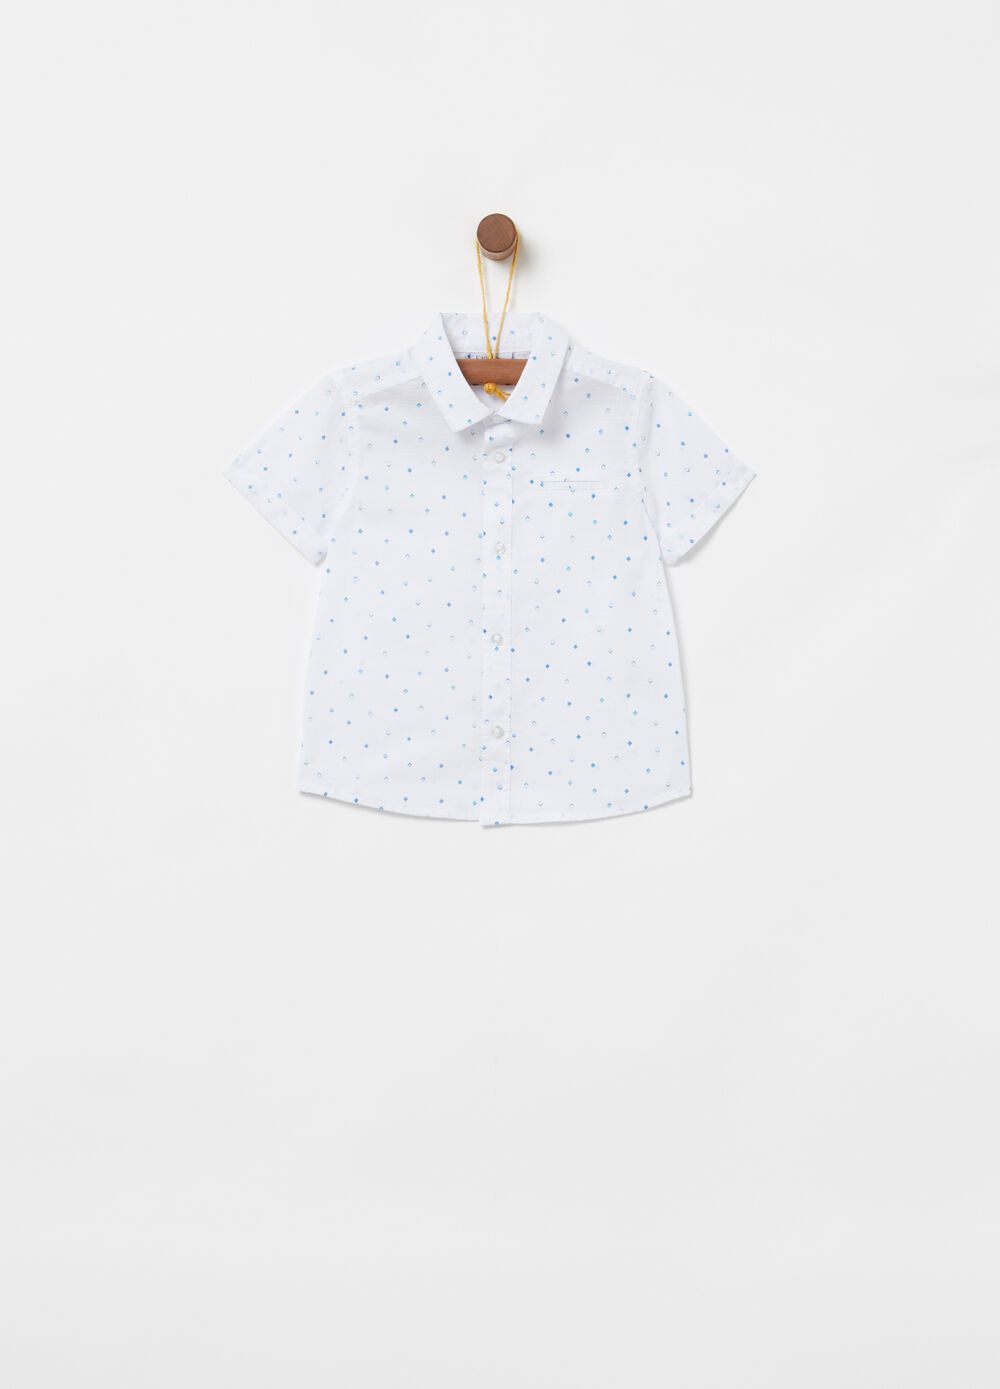 Shirt with short sleeves and pattern